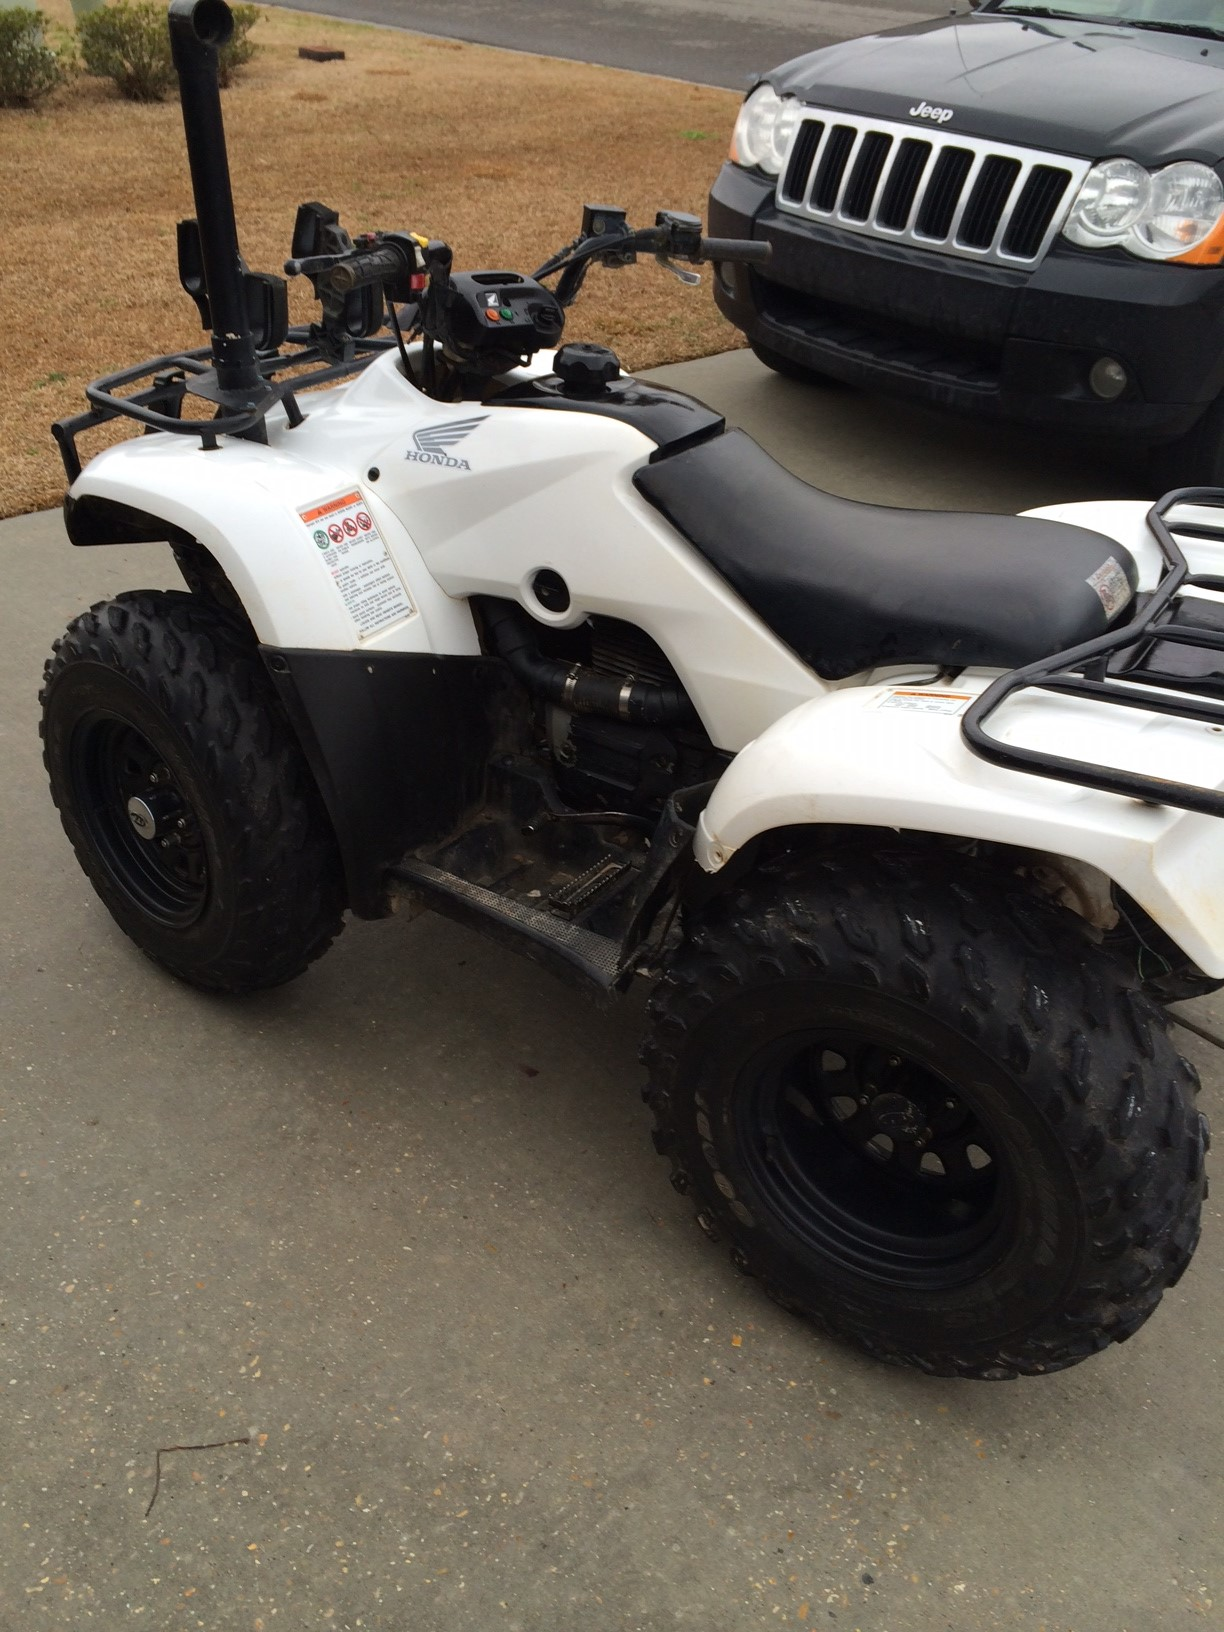 fourtrax powersports products florida recon kissimmee red sale honda for central es atv orlando dealer